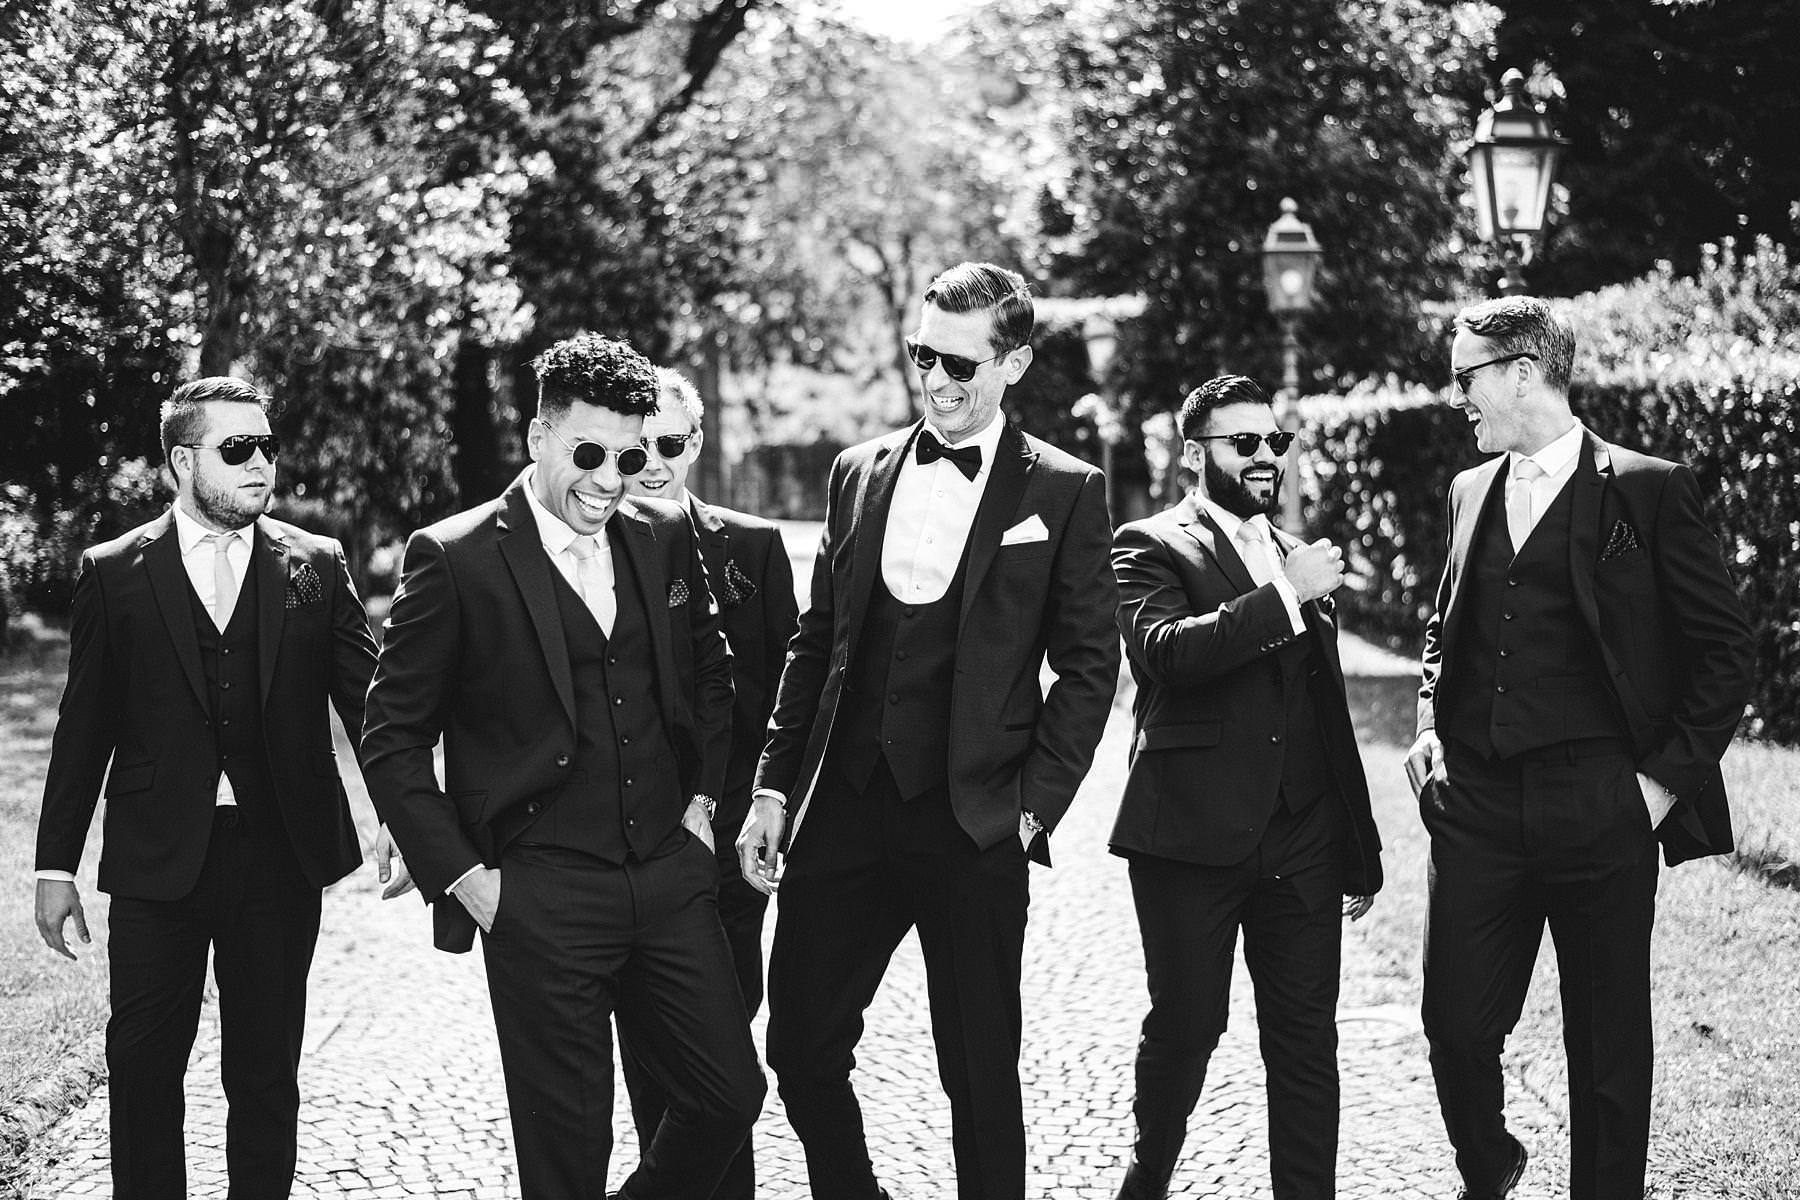 Exciting groom and mens just before the outdoor wedding ceremony hosted at Villa La Vedetta, Florence. Intimate luxury destination wedding